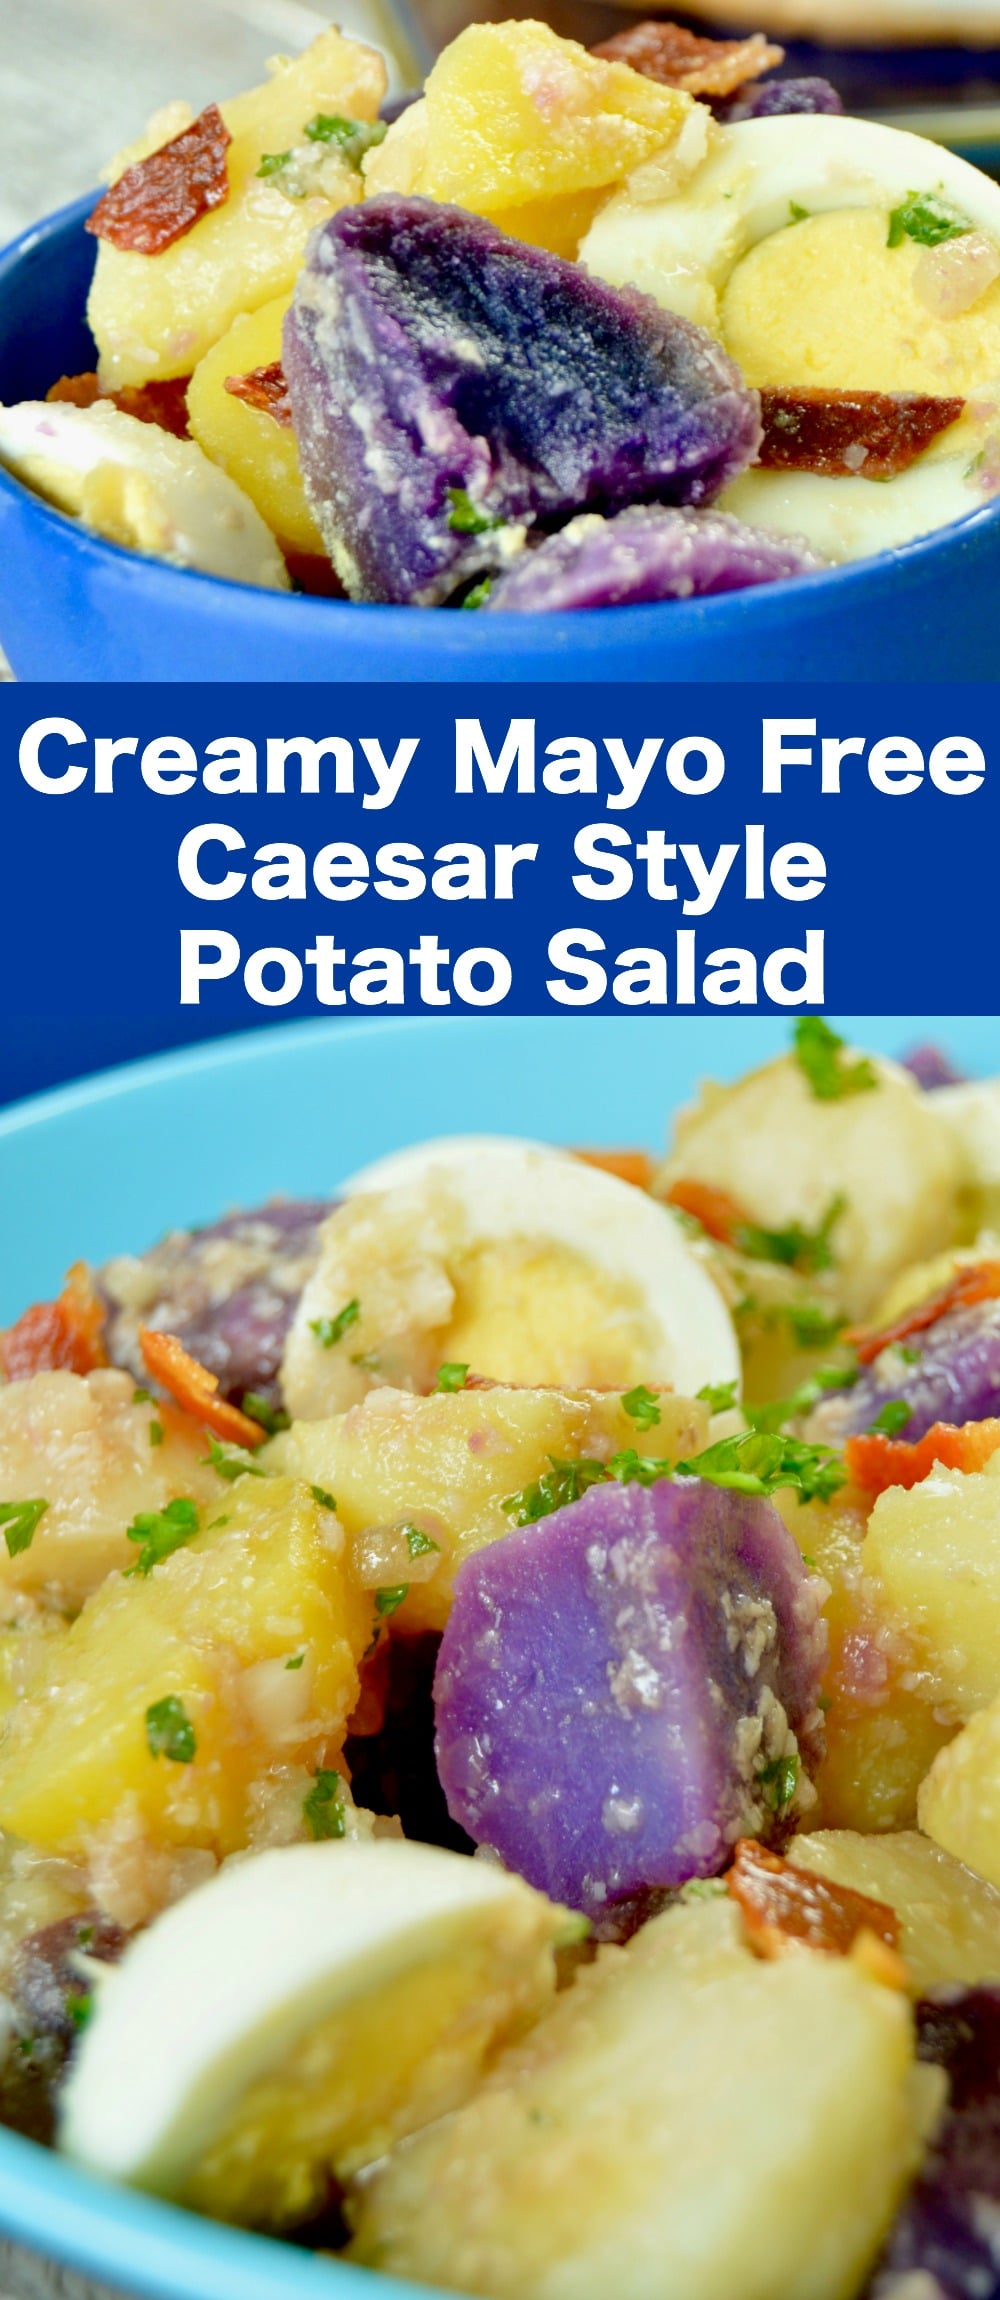 With three kinds of tender potatoes, this Creamy Mayo Free German Potato Salad is loaded with parmesan cheese and bacon. Perfect for a grilled dinner, summertime meal or to bring to a picnic.